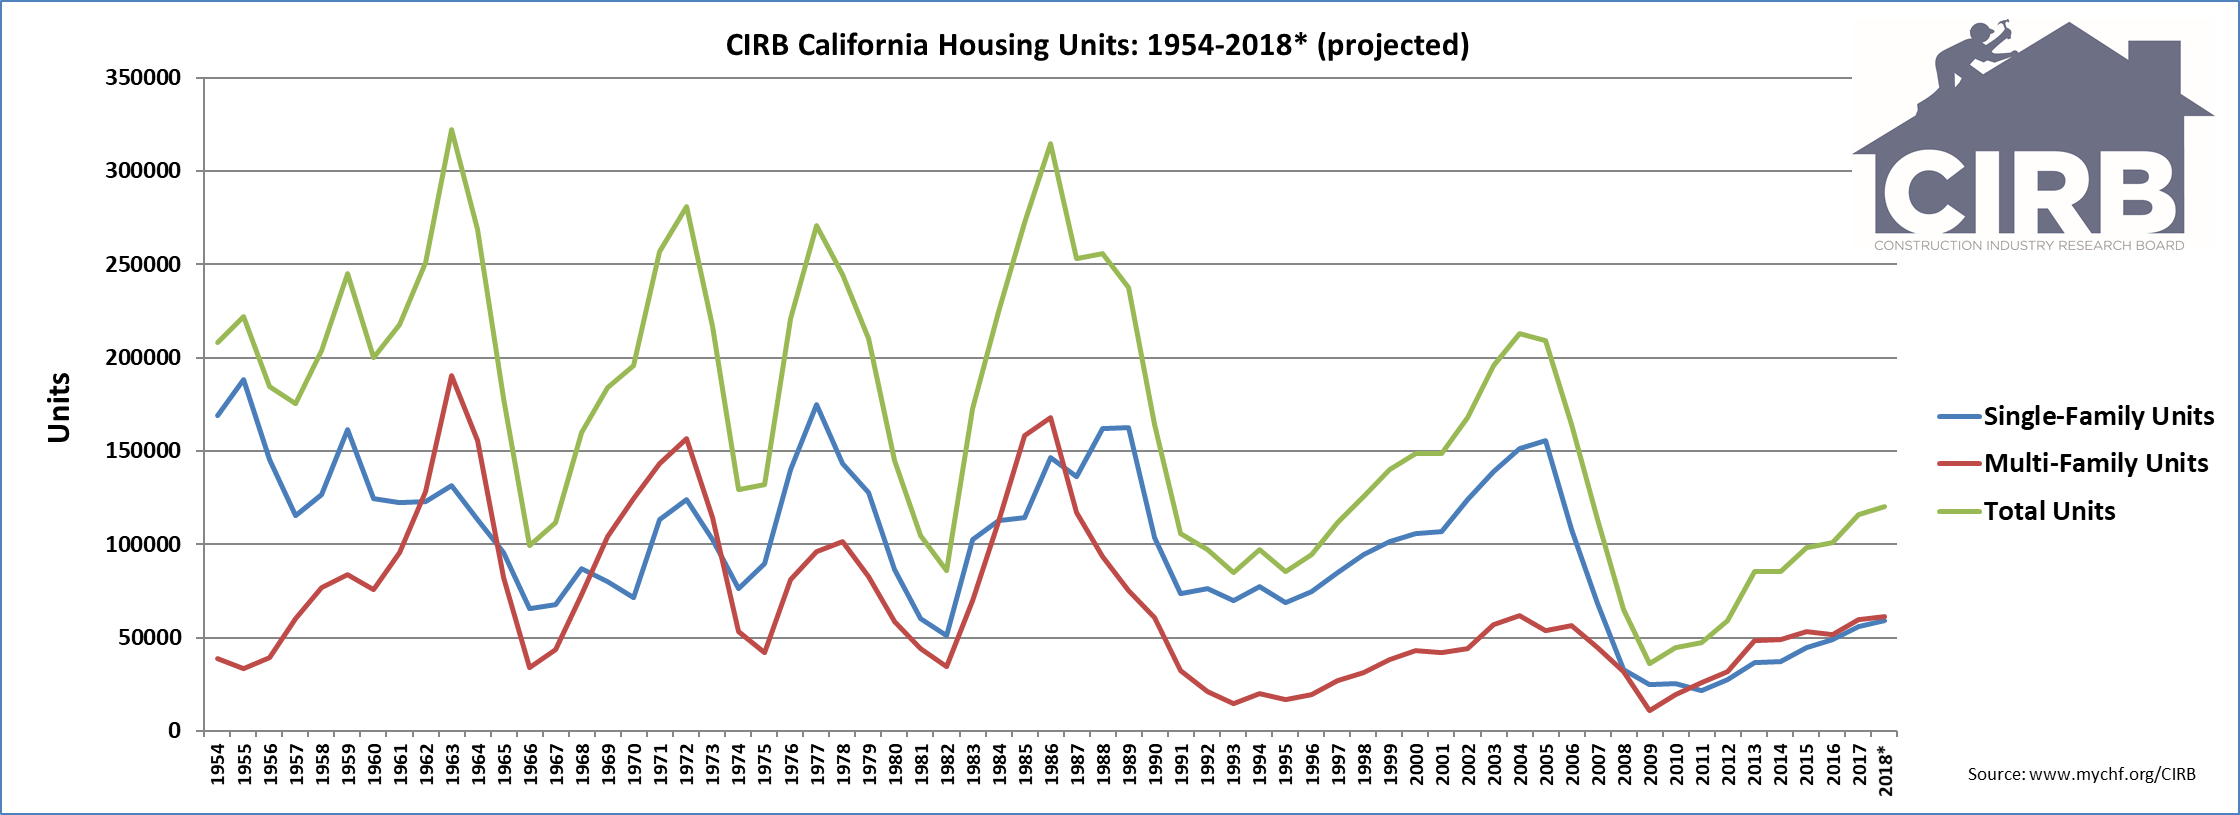 CIRB California Housing Units